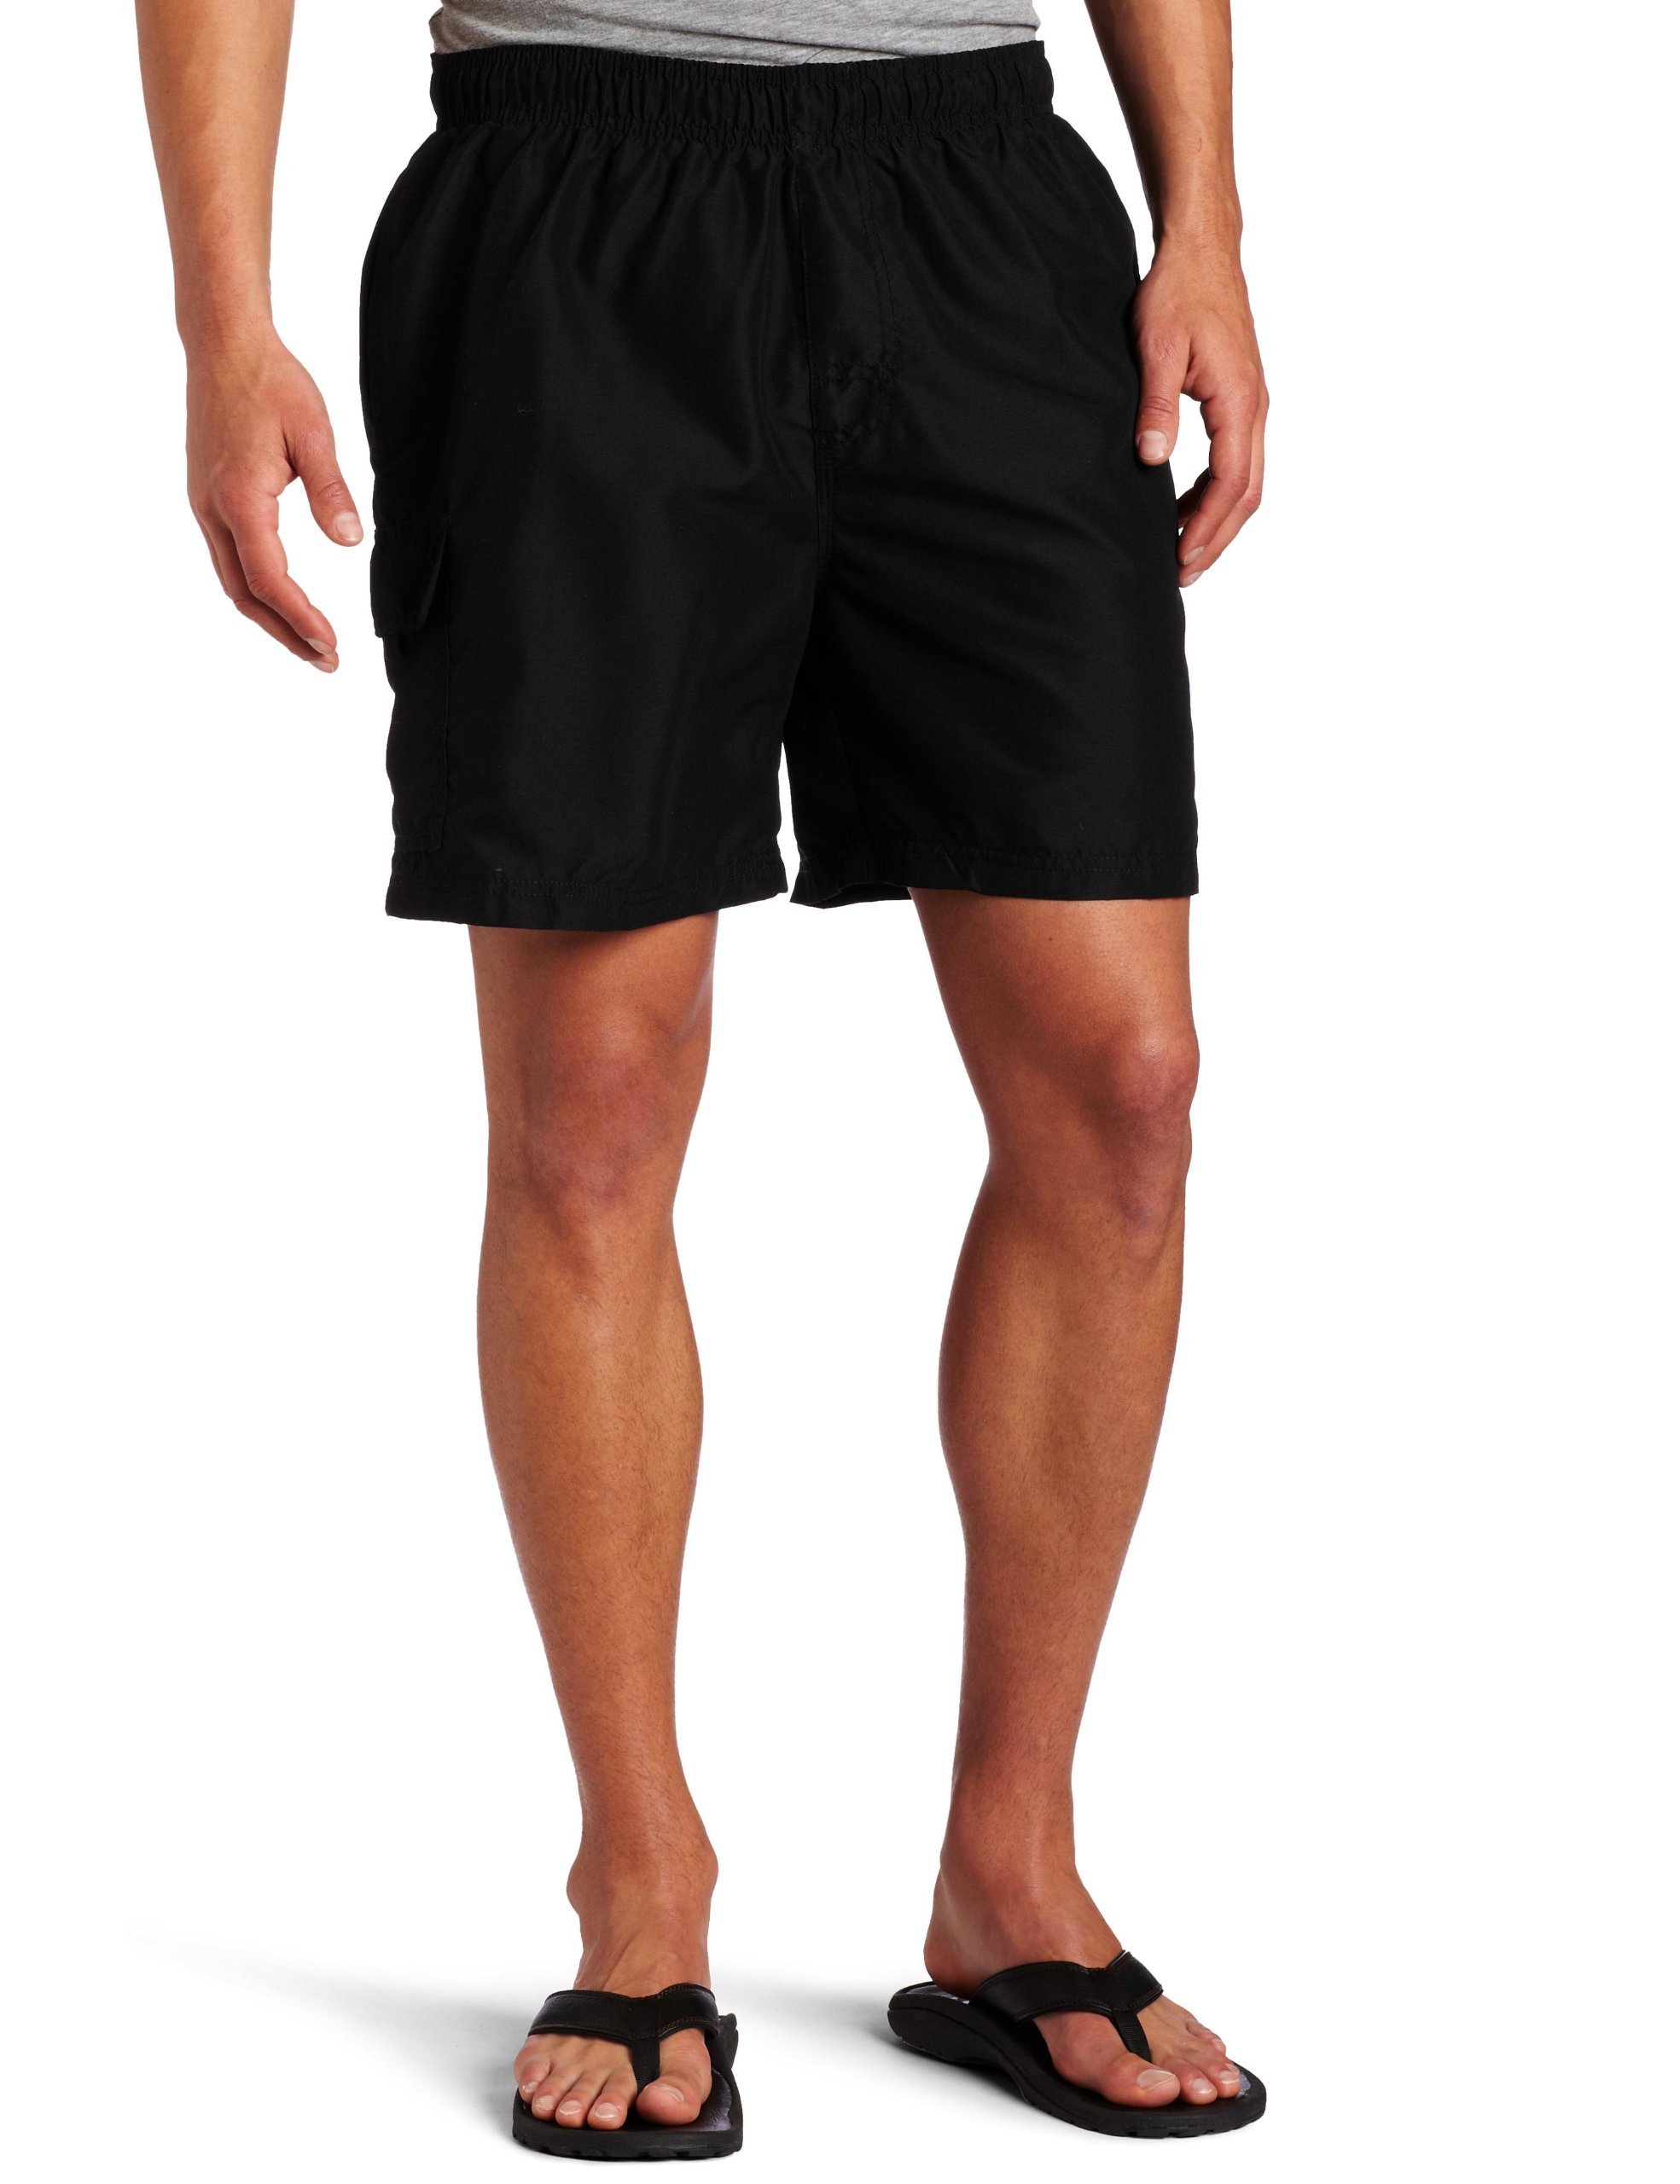 Kanu Surf Men's Havana Swim Trunks (Regular & Extended Sizes), Black, 3X by Kanu Surf